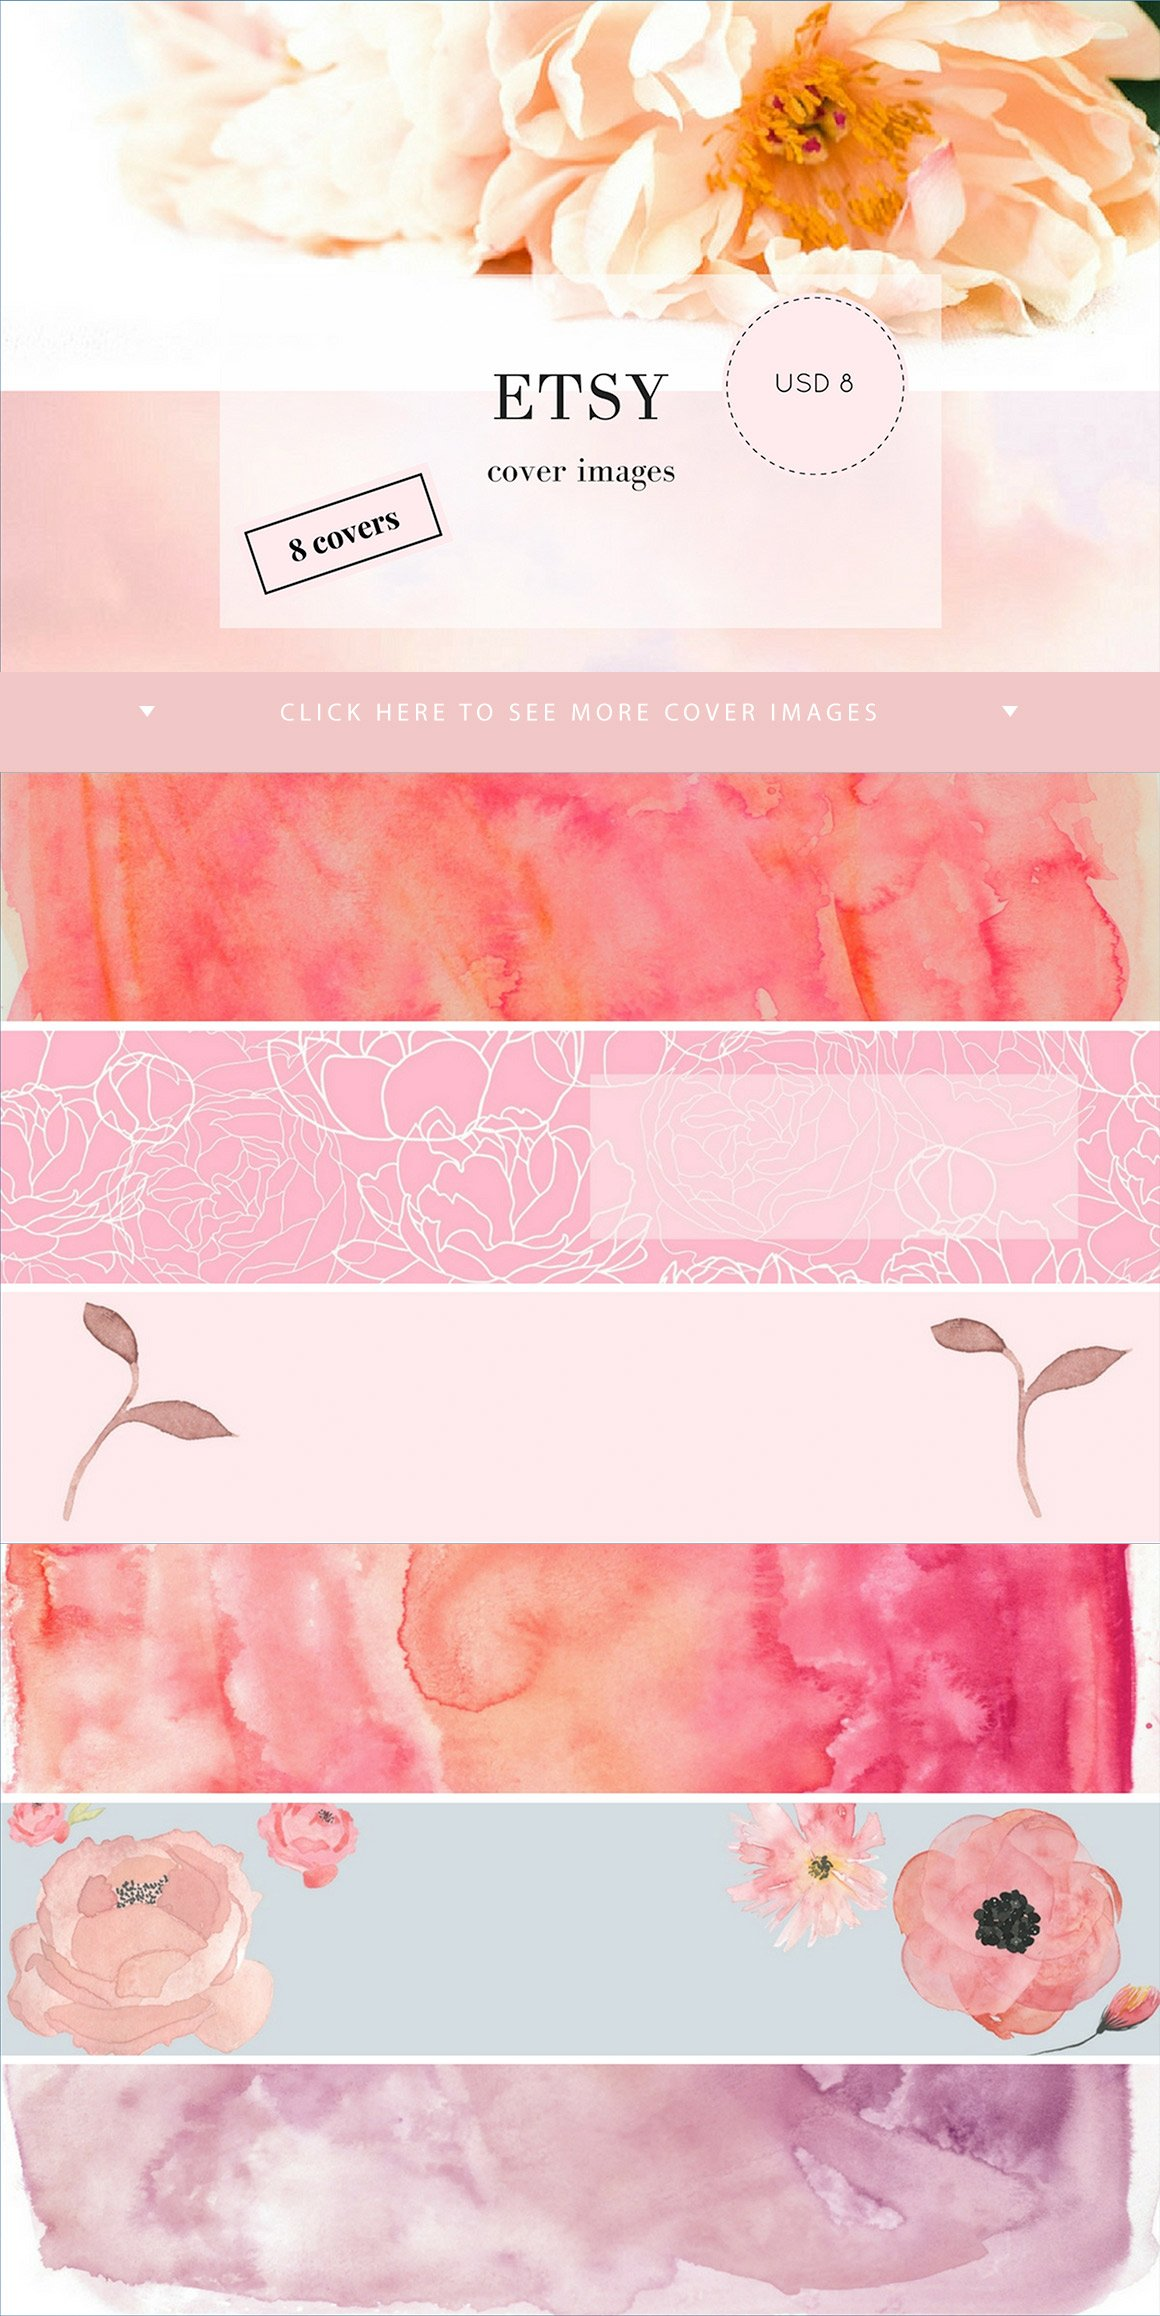 How To Design An Etsy Banner Cover Photo Youtube 3364477